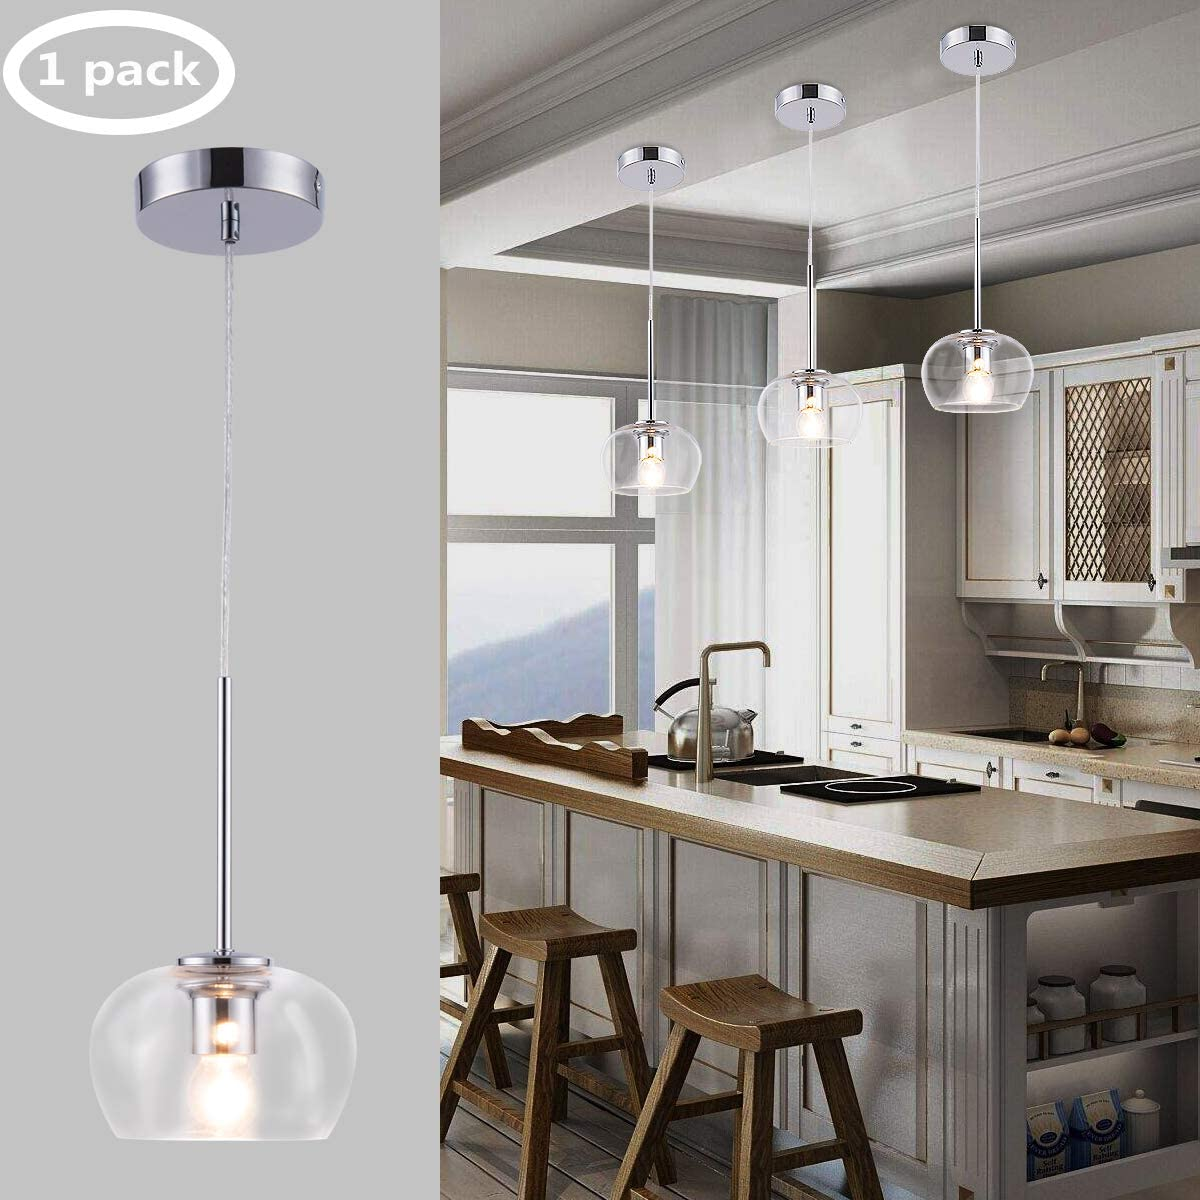 Harchee Modern Glass Globe Pendant Lighting with Chrome Finish with Clear Glass Shade, Adjustable Mini Kitchen Light Fixtures Ceiling Hanging Lamp for Dining Room Hotel Loft Counter Farmhouse